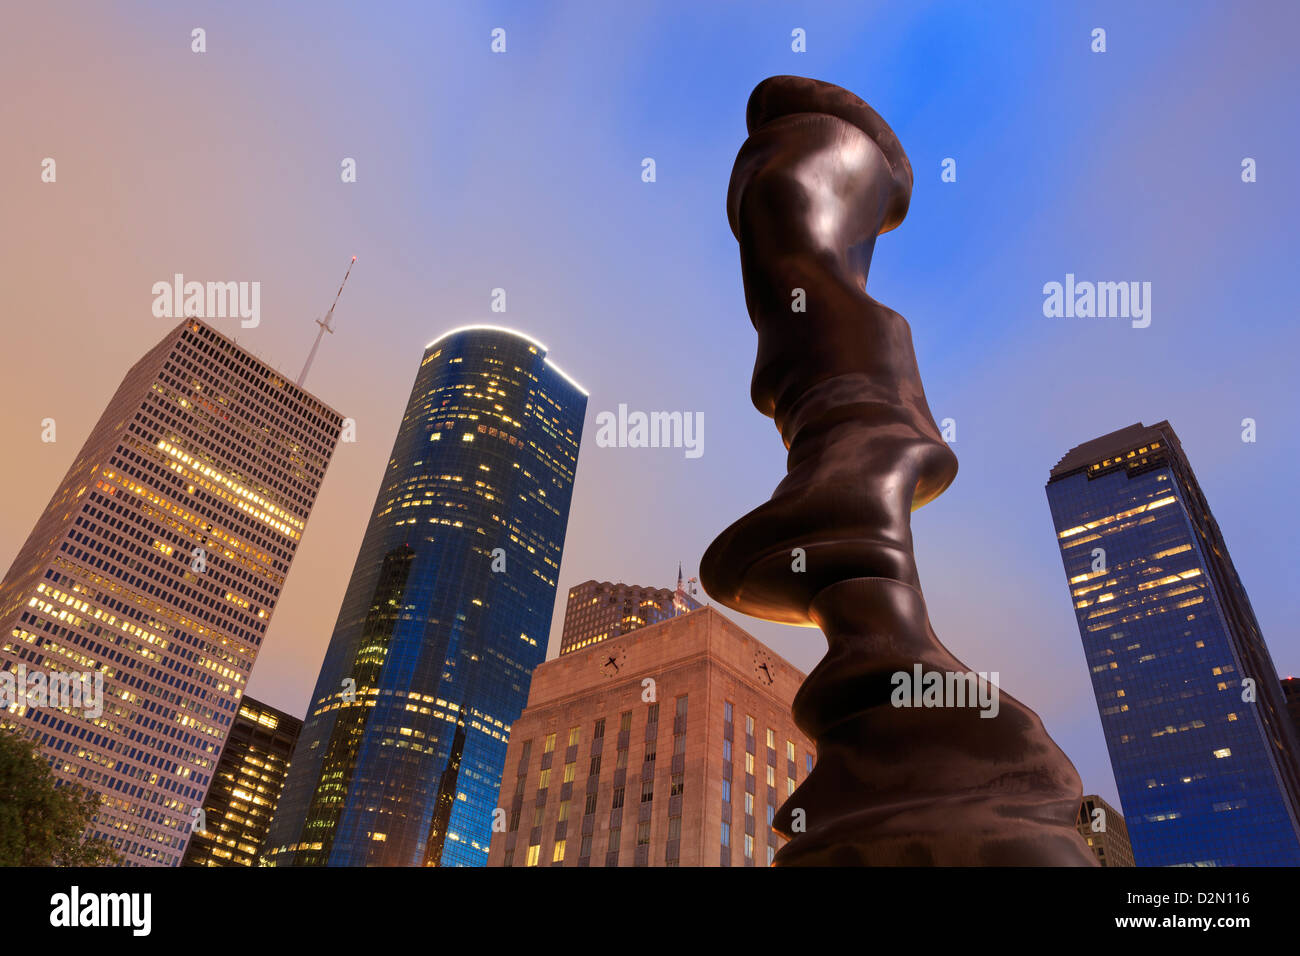 In Minds sculpture by Tony Cragg, Hobby Center For The Performing Arts, Houston, Texas, United States of America, - Stock Image